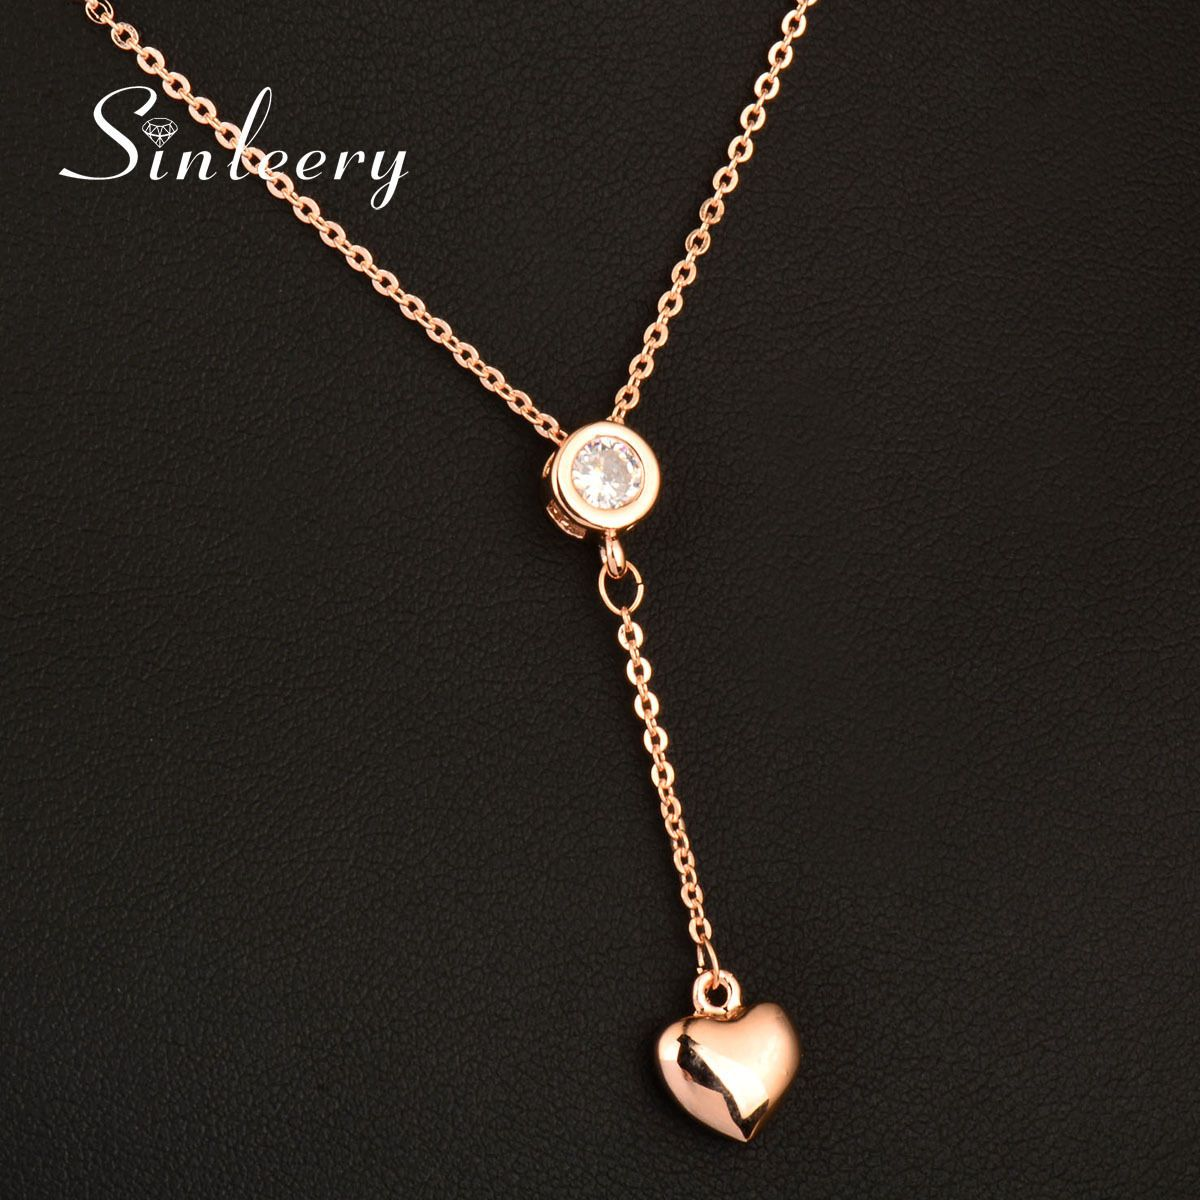 Million Charms 14k Yellow Gold with White CZ Accented Small Floating Heart Charm Pendant